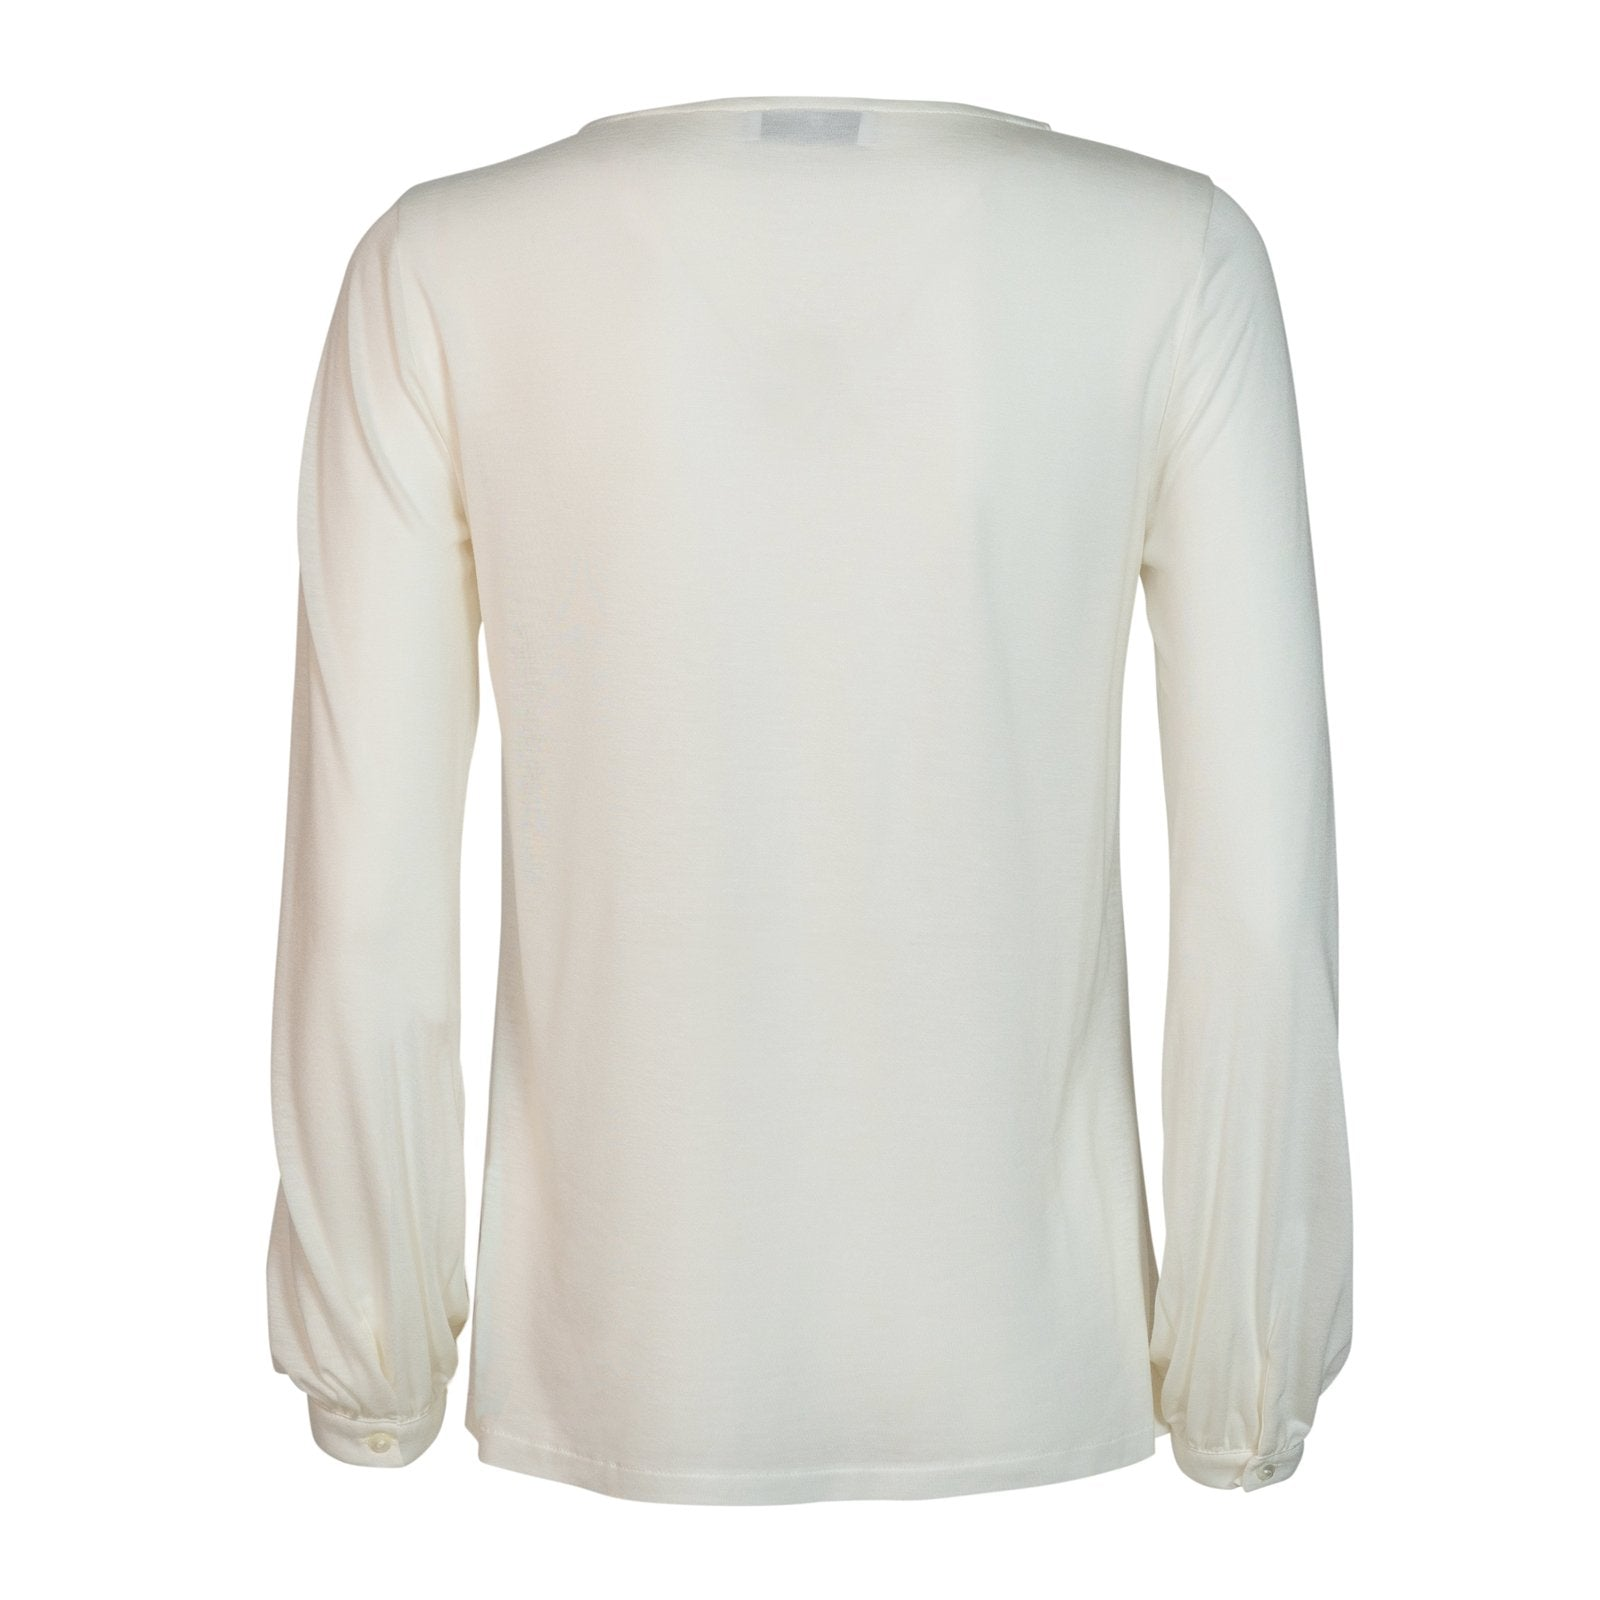 PUR1213 CREW NECK KNITWEAR LONG SLEEVE - Jennifer Tattanelli